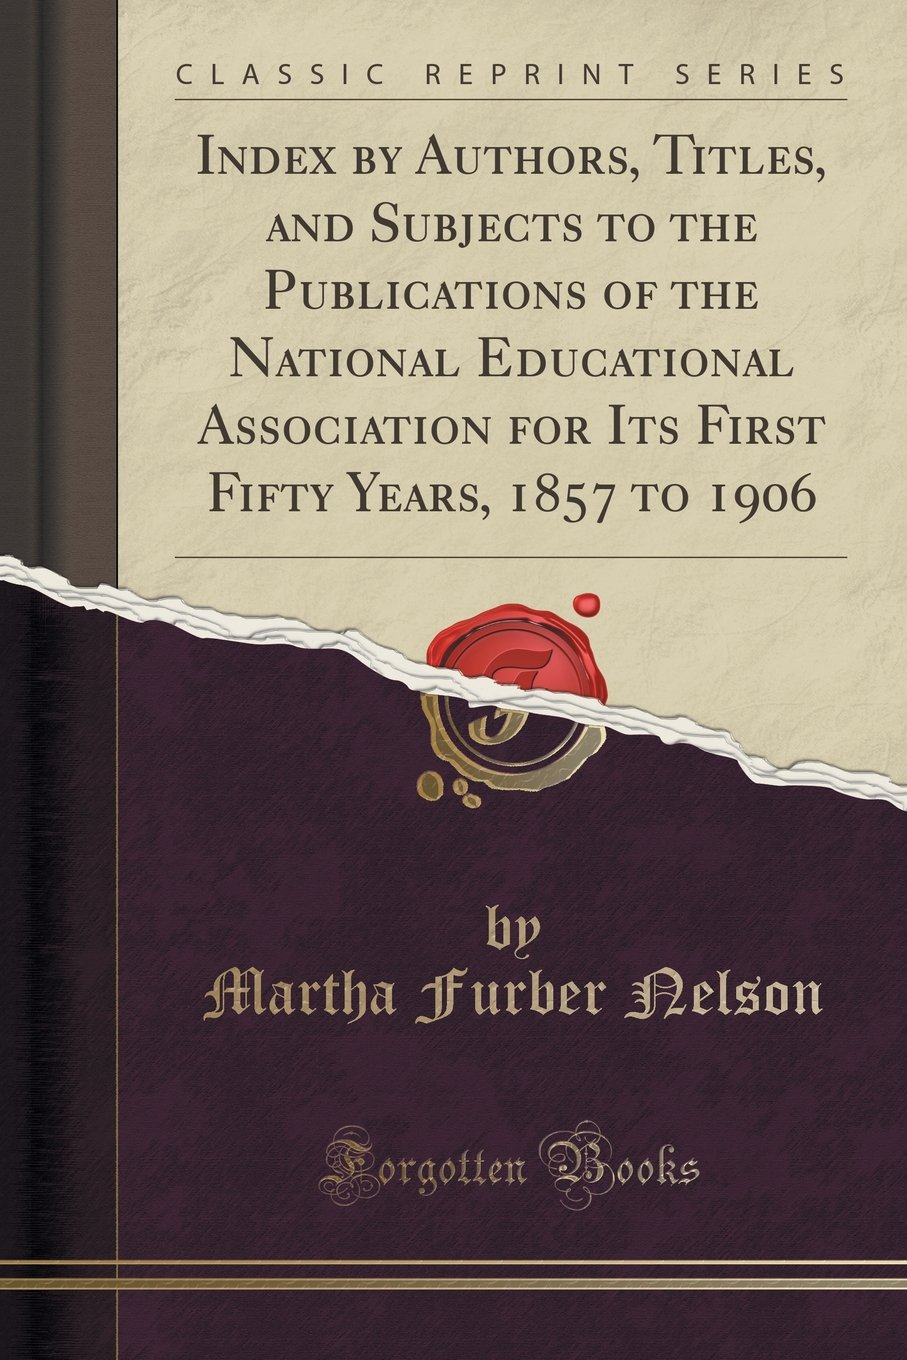 Download Index by Authors, Titles, and Subjects to the Publications of the National Educational Association for Its First Fifty Years, 1857 to 1906 (Classic Reprint) pdf